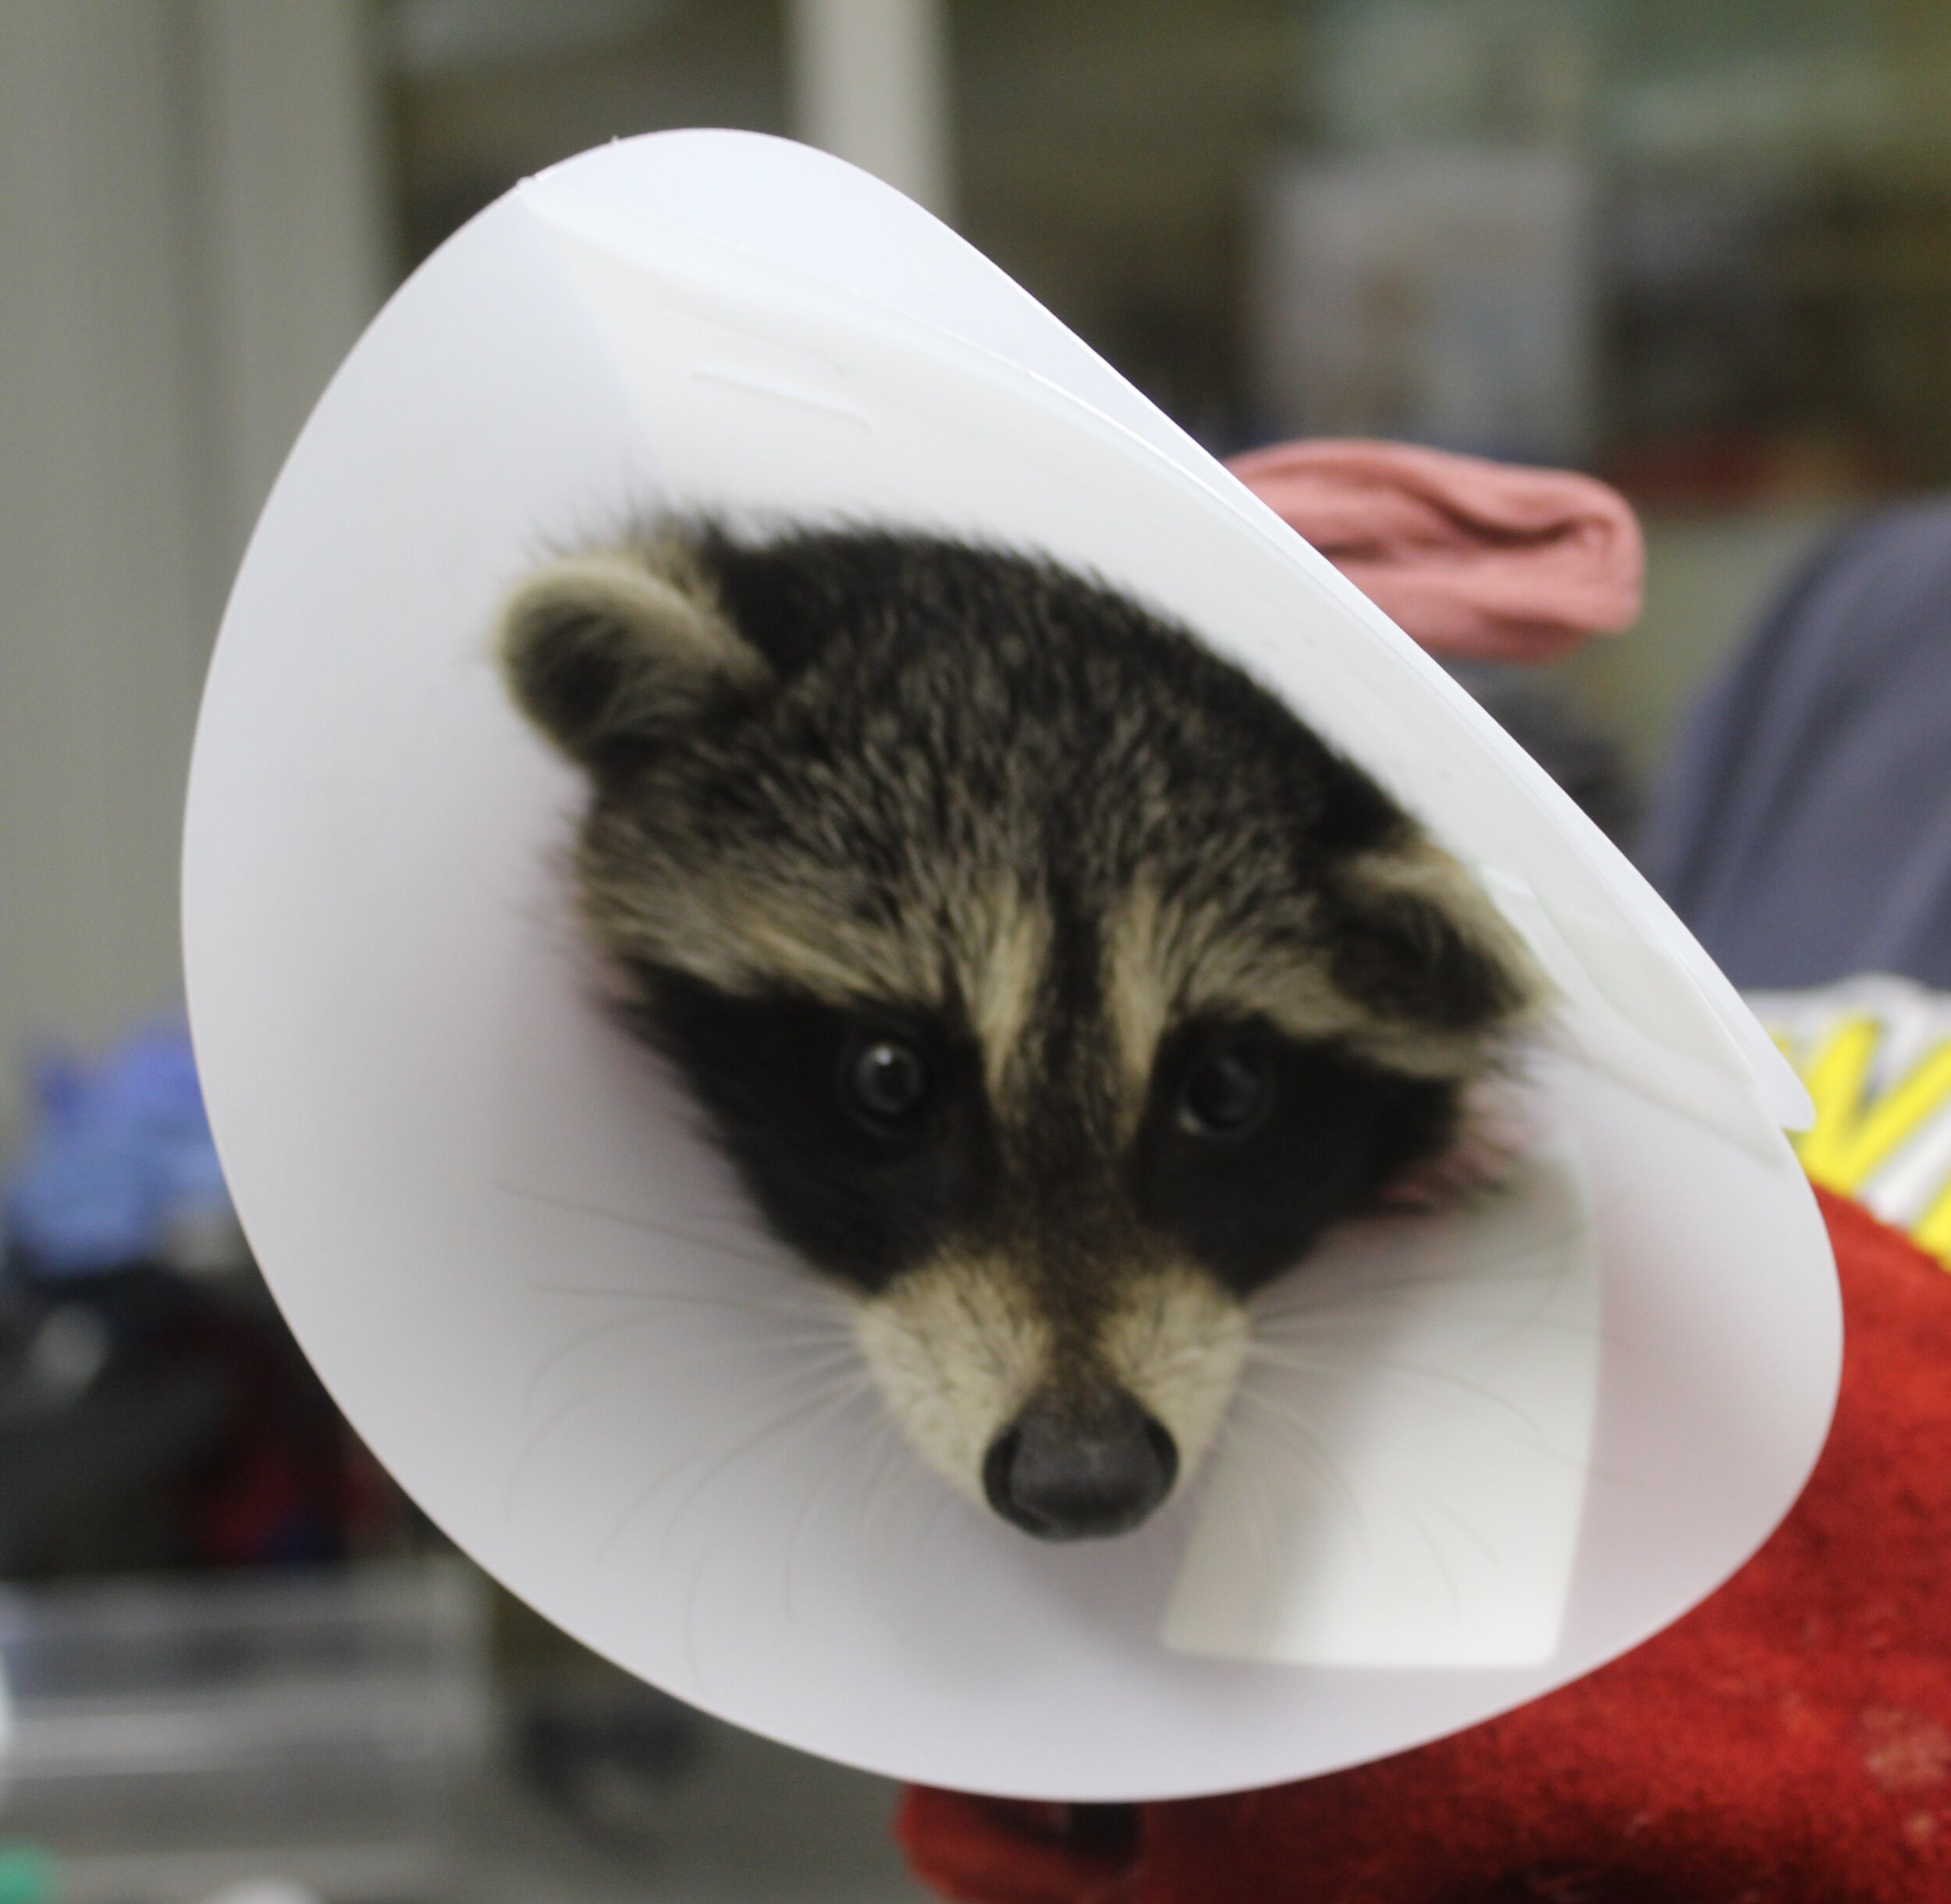 Getting medical treatment for a raccoon hit by a car at Fox Run